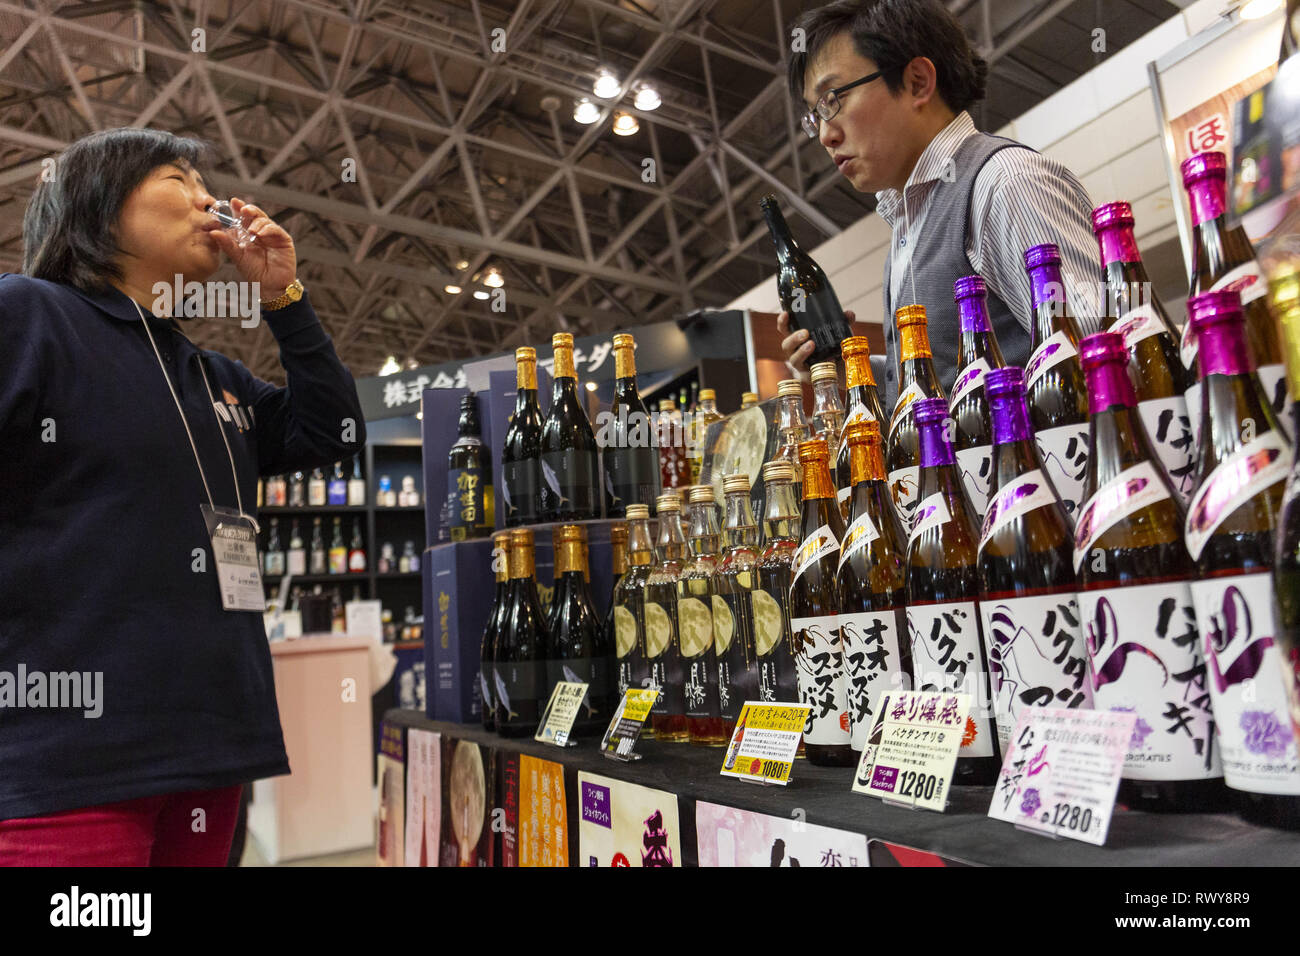 International Food And Drinks Exhibition Stock Photos